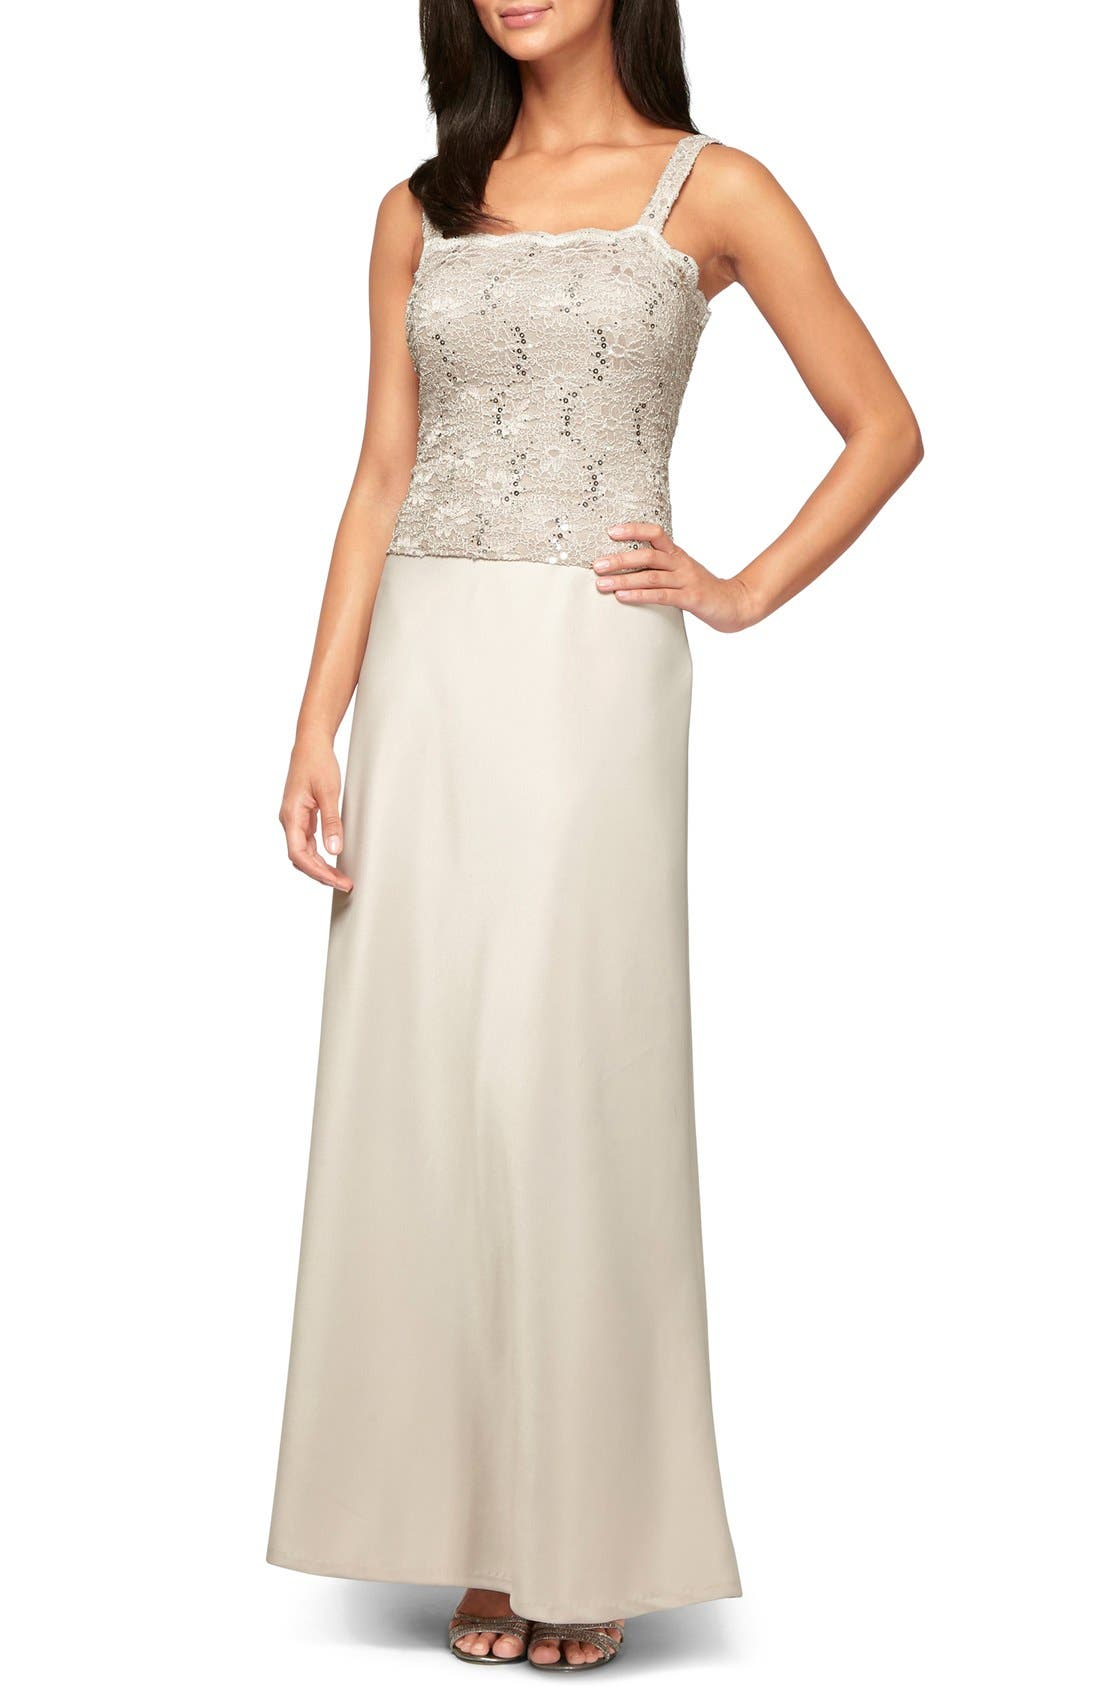 ALEX EVENINGS, Sequin Lace & Satin Gown with Jacket, Alternate thumbnail 2, color, TAUPE